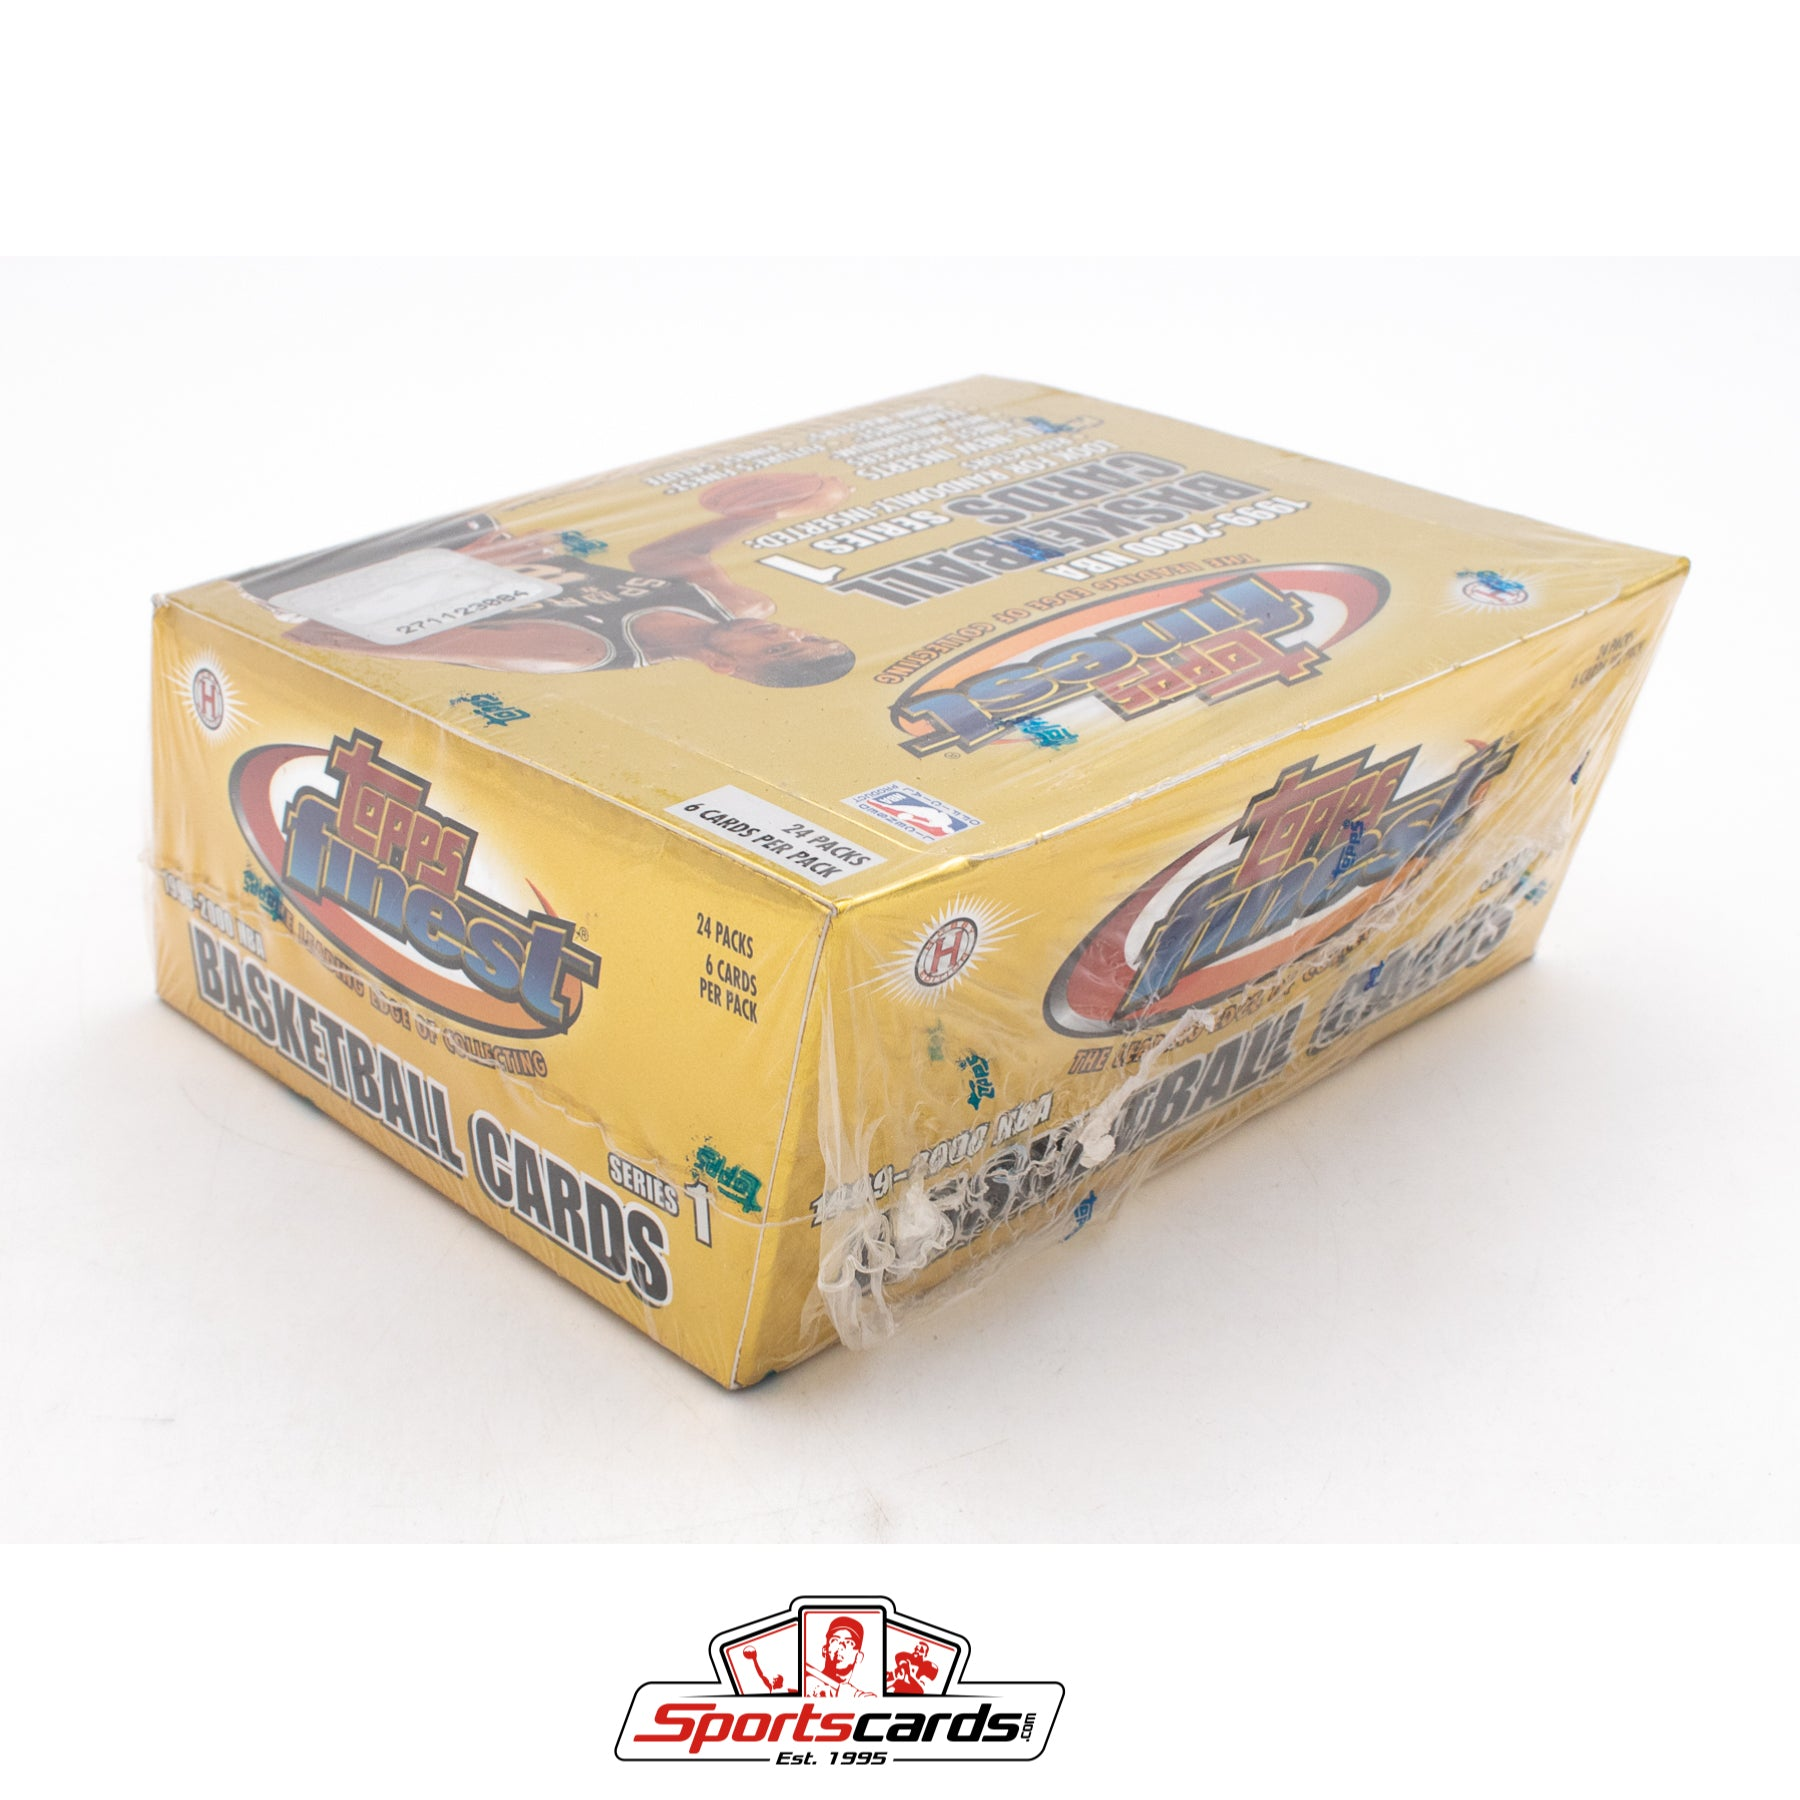 1999-2000 Topps Finest NBA Basketball Series 1 Factory Sealed Box